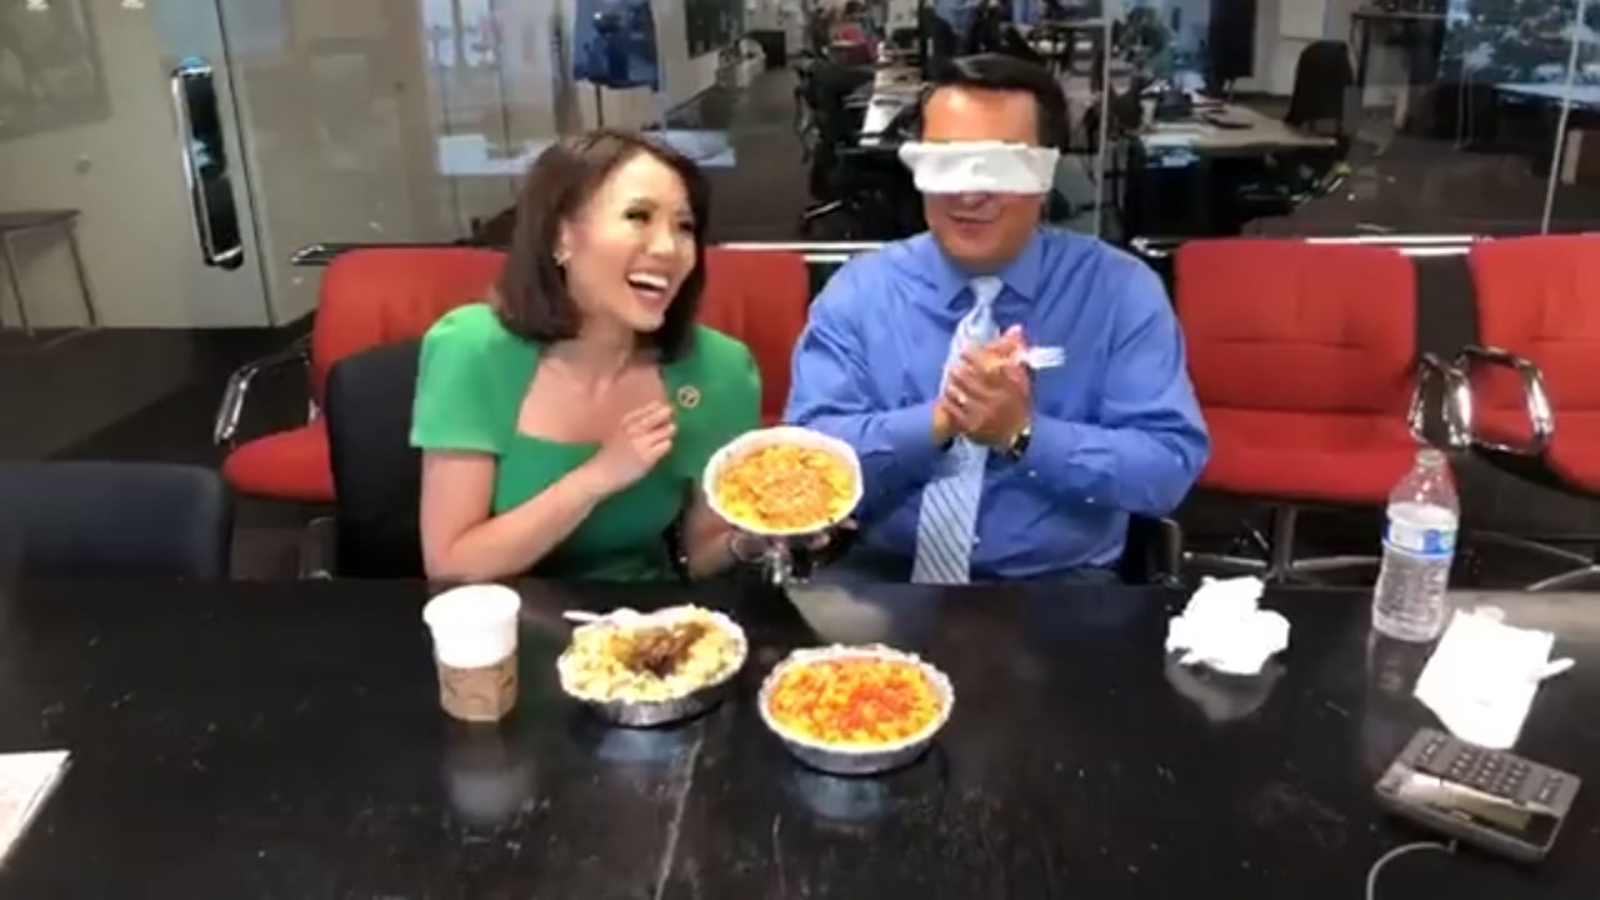 National Mac and Cheese Day: ABC7 News celebrates with unintentionally hilarious blind taste test of 3 San Francisco dishes